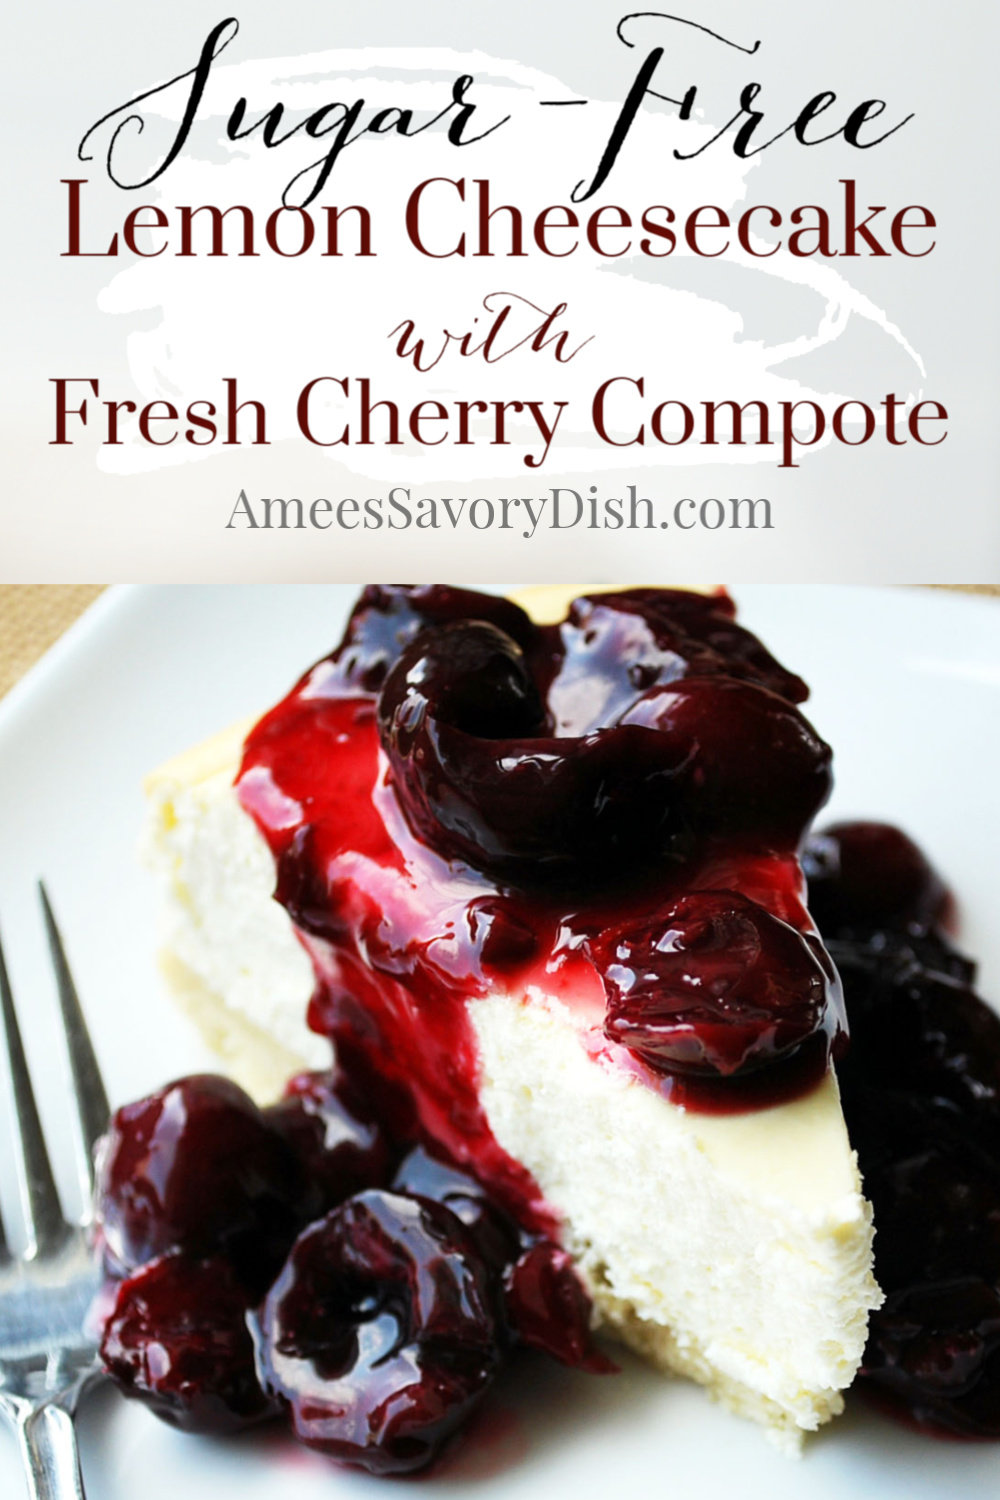 A recipe for sugar-free lemon cheesecake with a delicious cherry compote topping made with all-natural stevia, fresh lemon juice, and fresh sweet cherries. via @Ameessavorydish